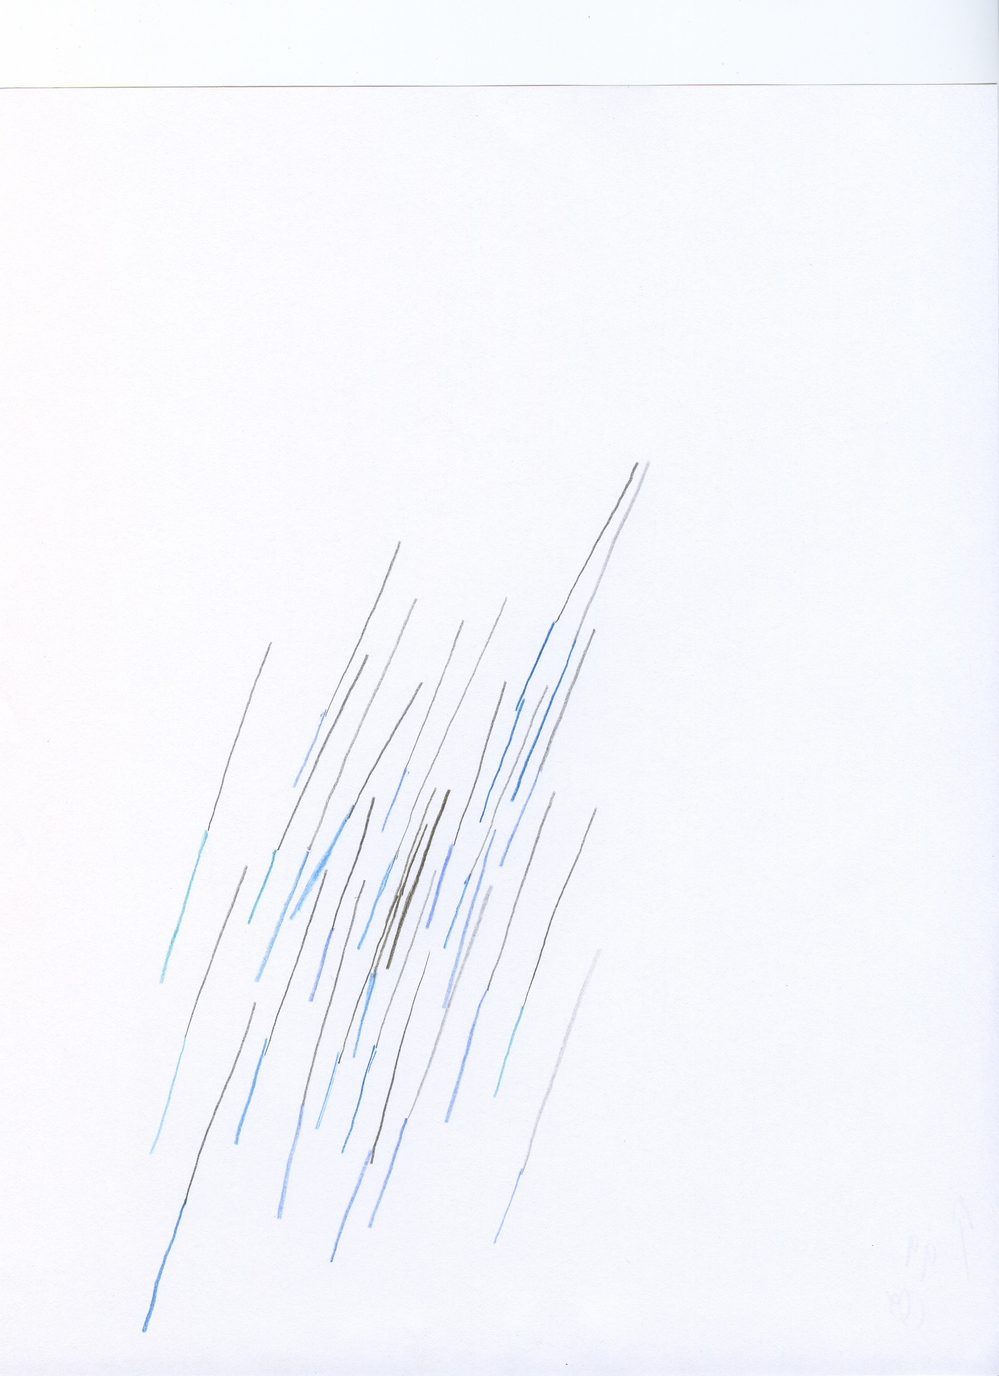 100 compositional sketches, 2008